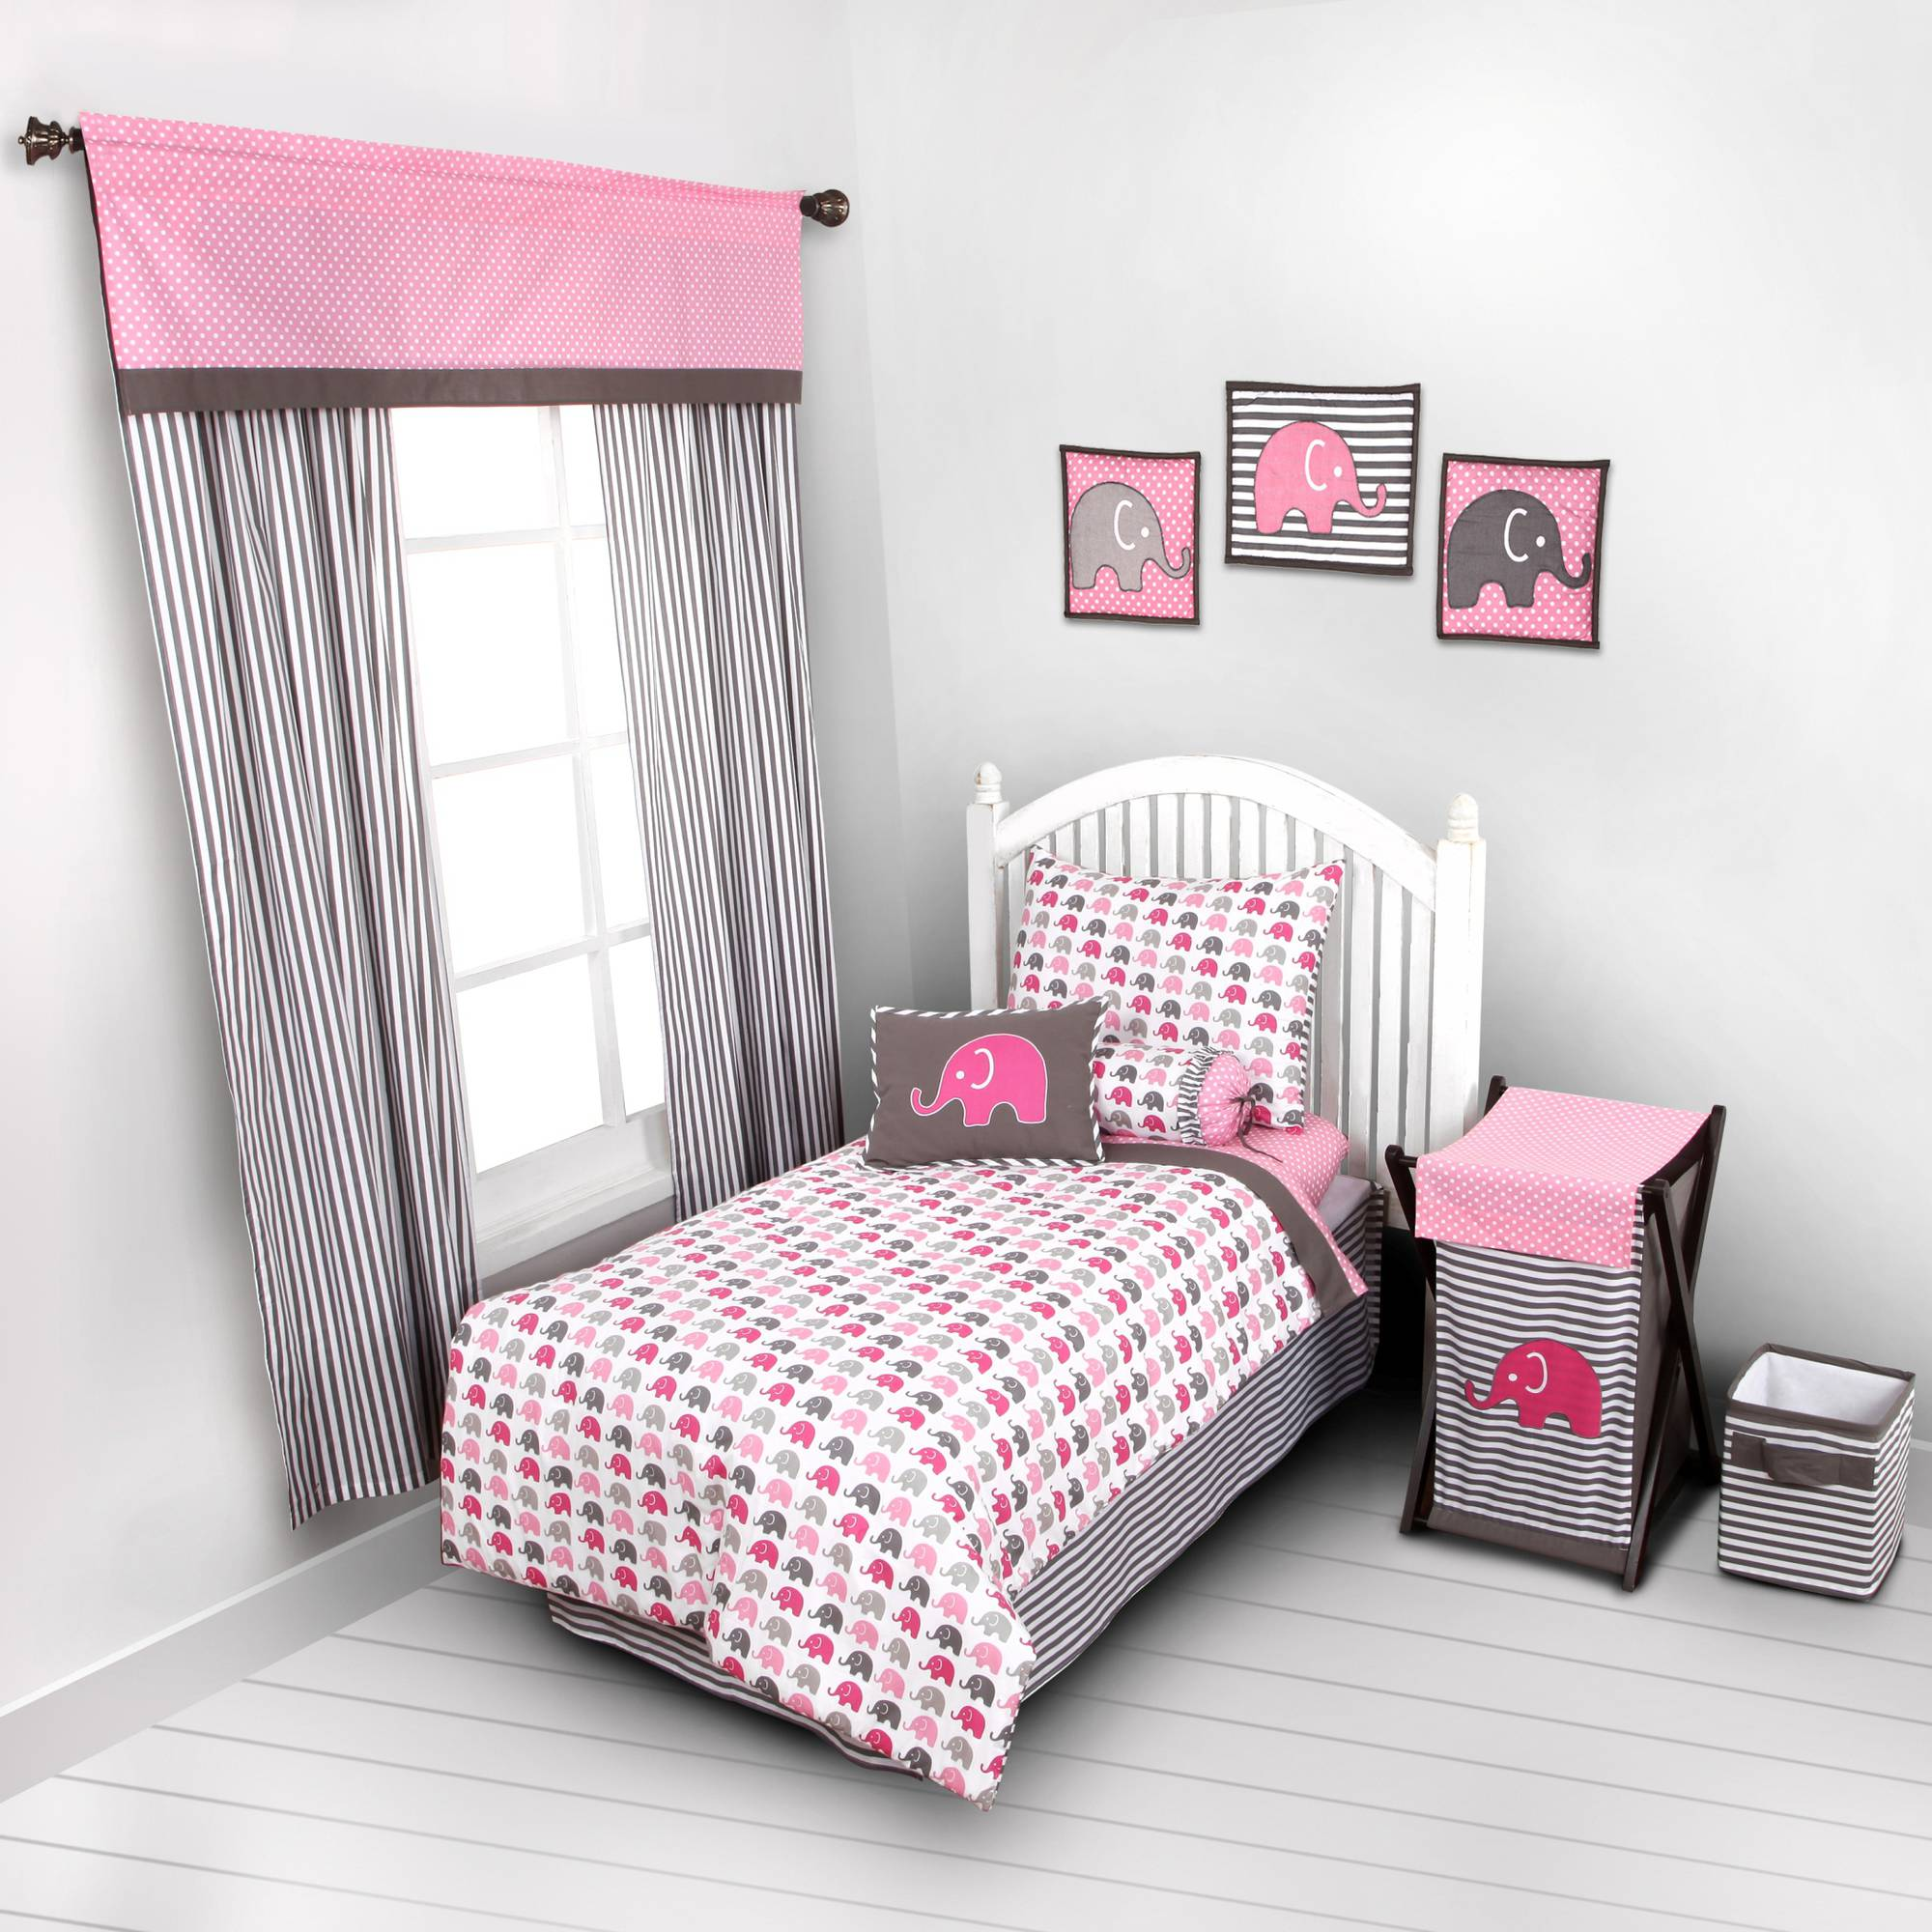 Bacati   Elephants 4 Piece Toddler Bedding Set 100% Cotton Percale,  Pink/Gray   Walmart.com